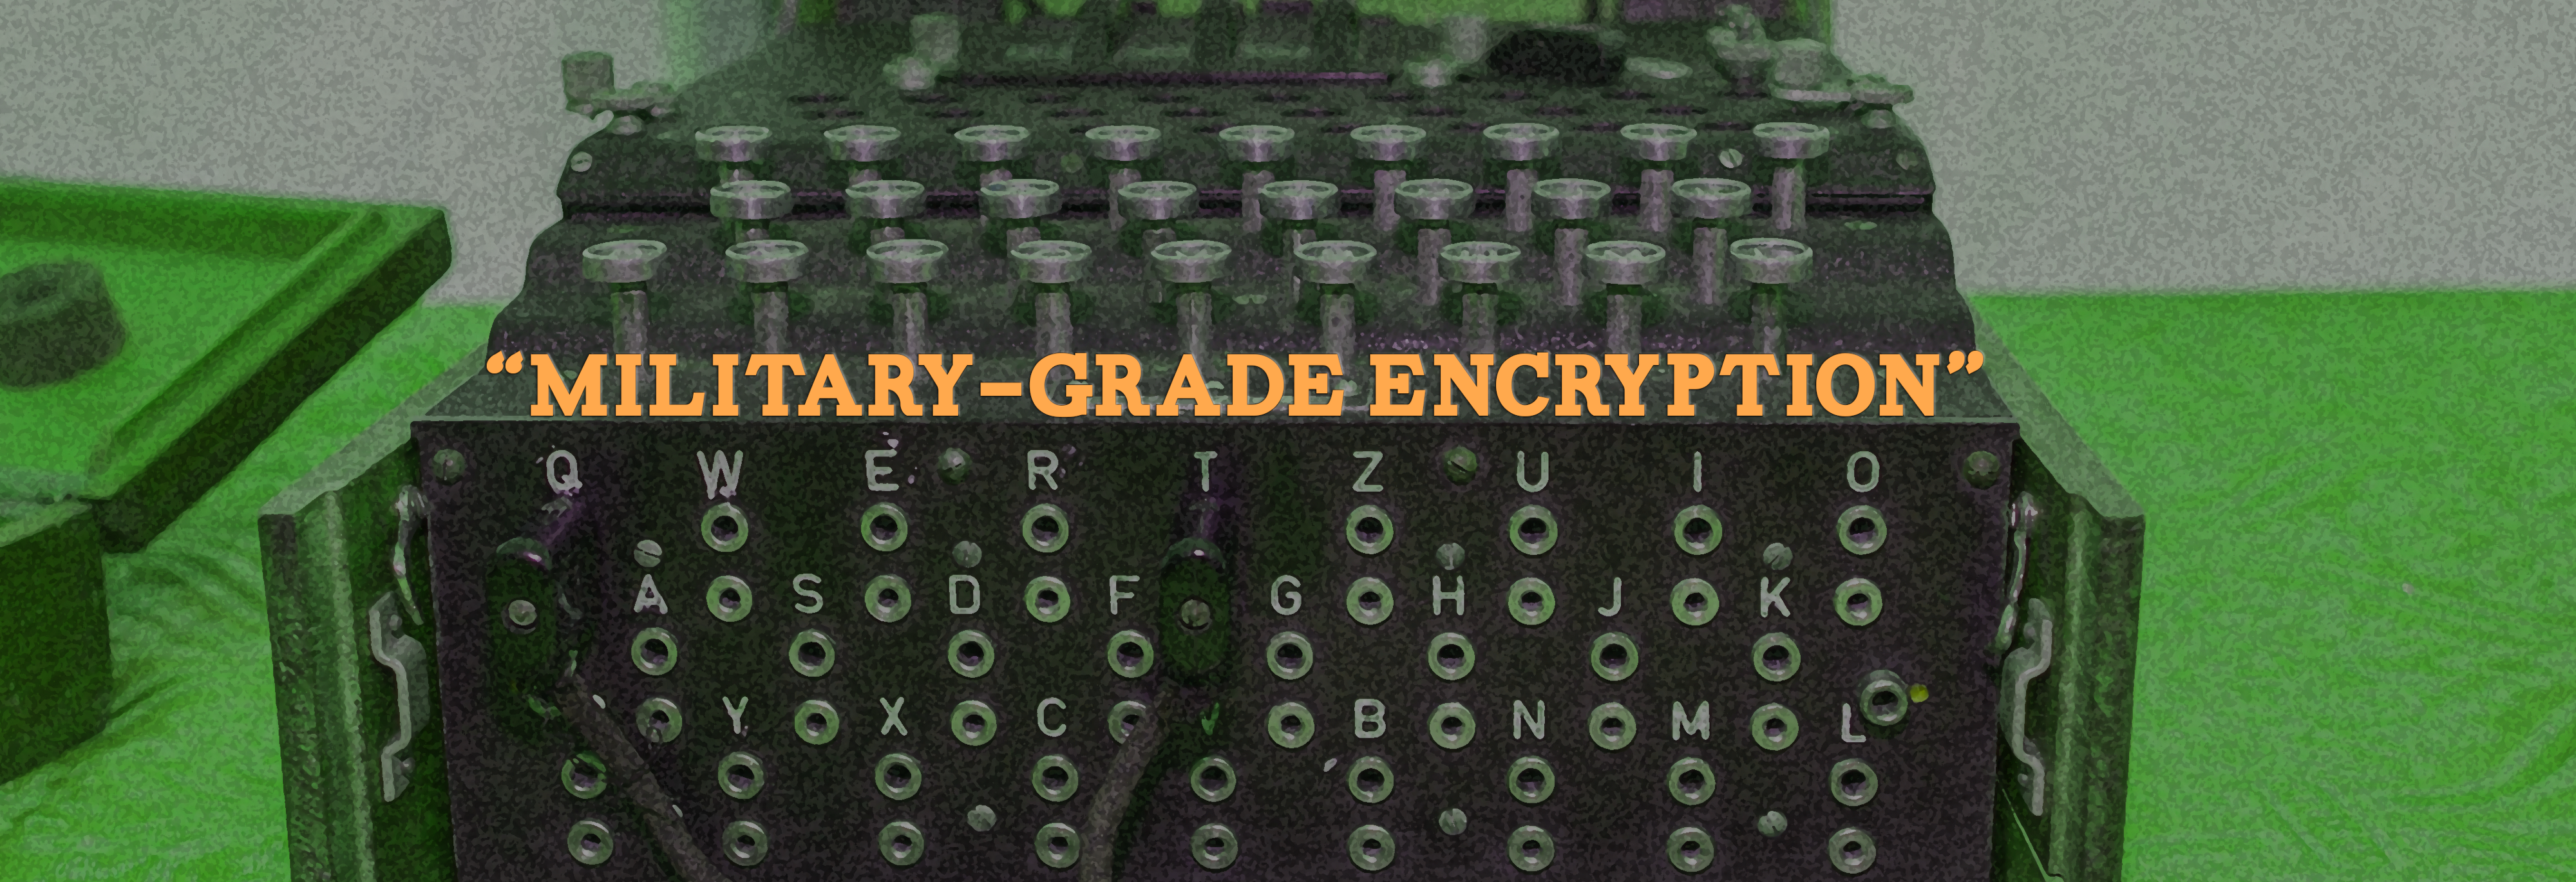 """Military Grade Encryption"""" - The Salty Hash"""